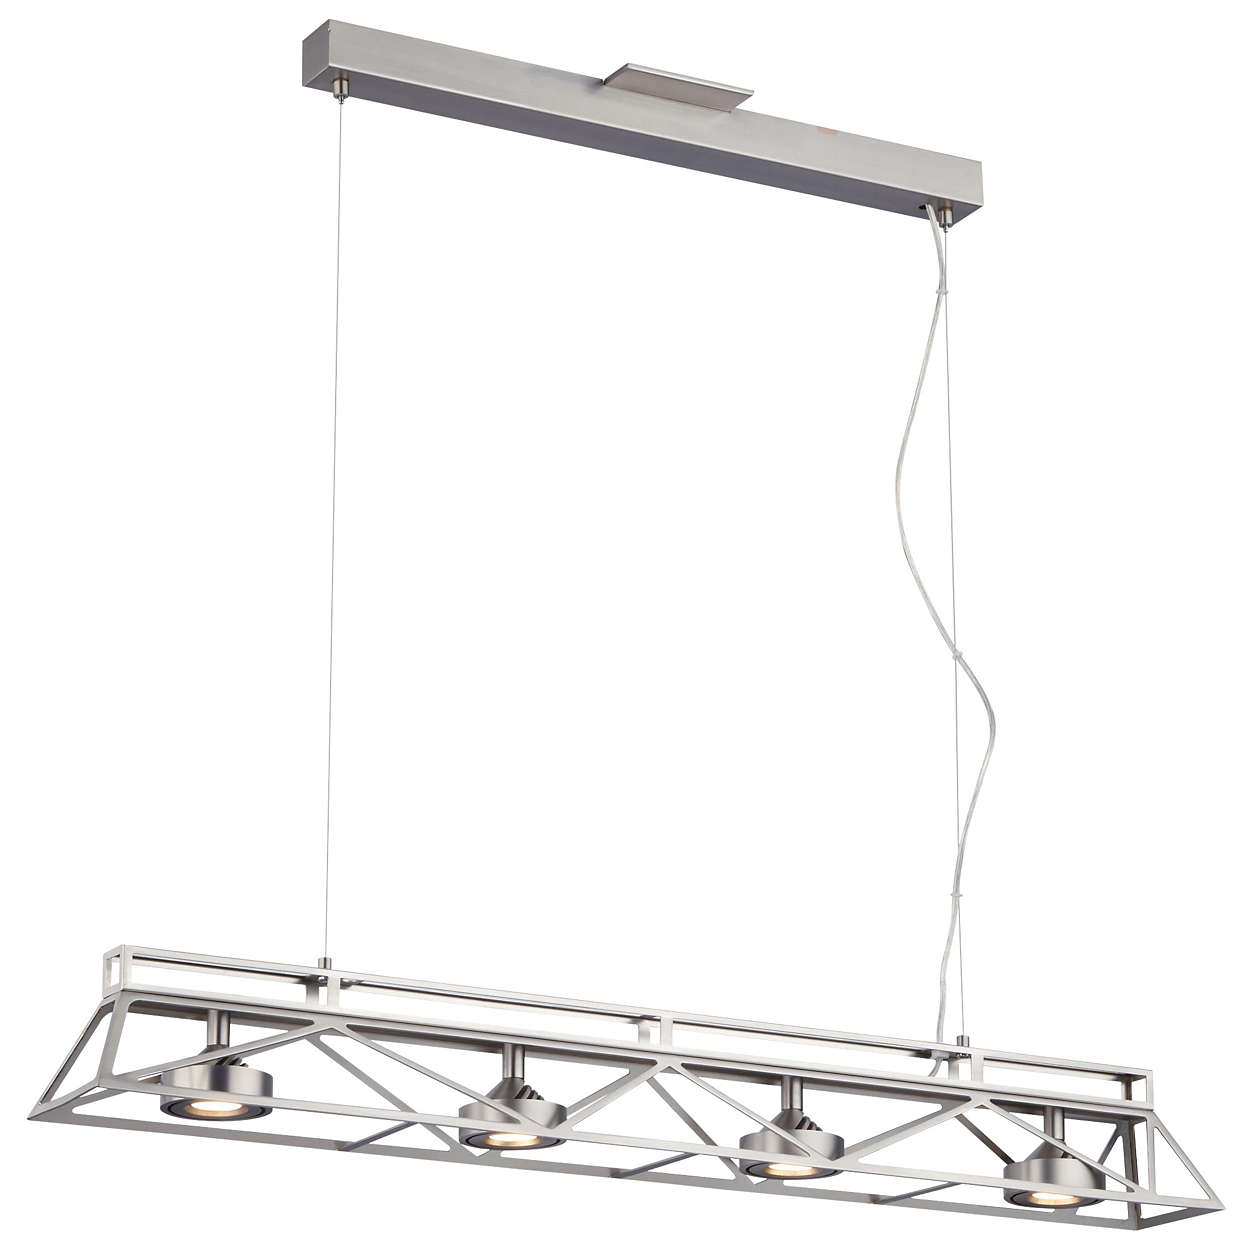 Bridge 4-light LED Pendant in Satin Nickel finish